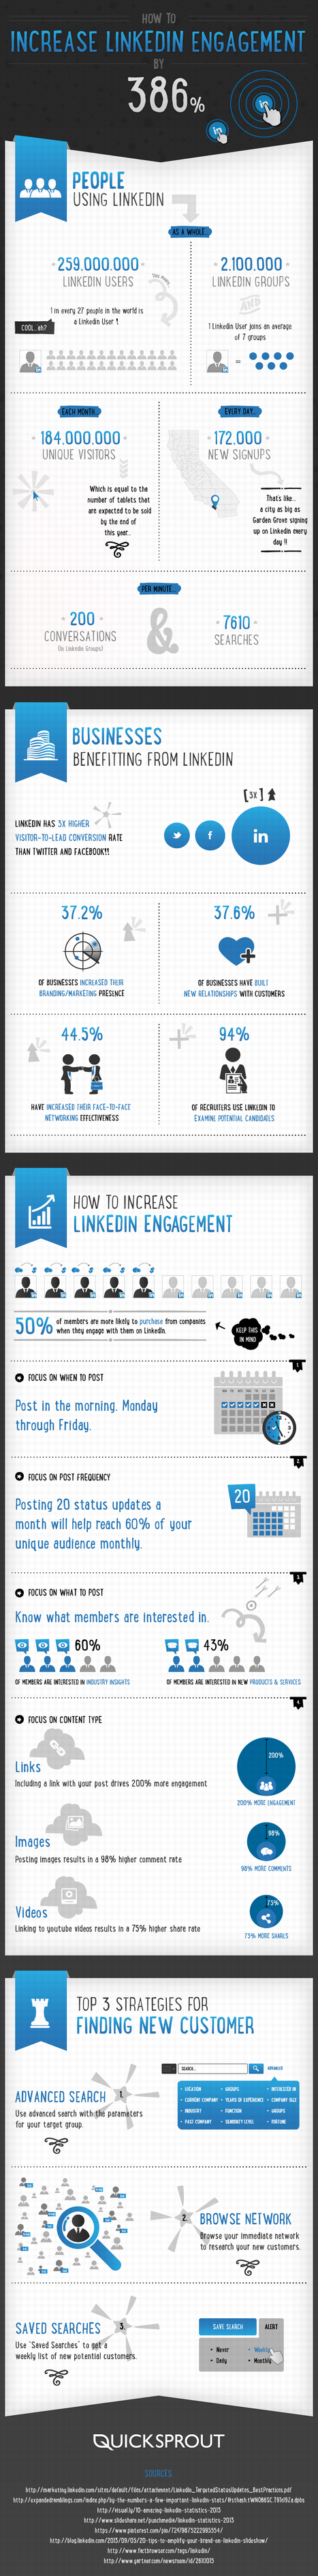 How to Increase LinkedIn Engagement 300 Percent #INFOGRAPHIC | My Blog 2015 | Scoop.it